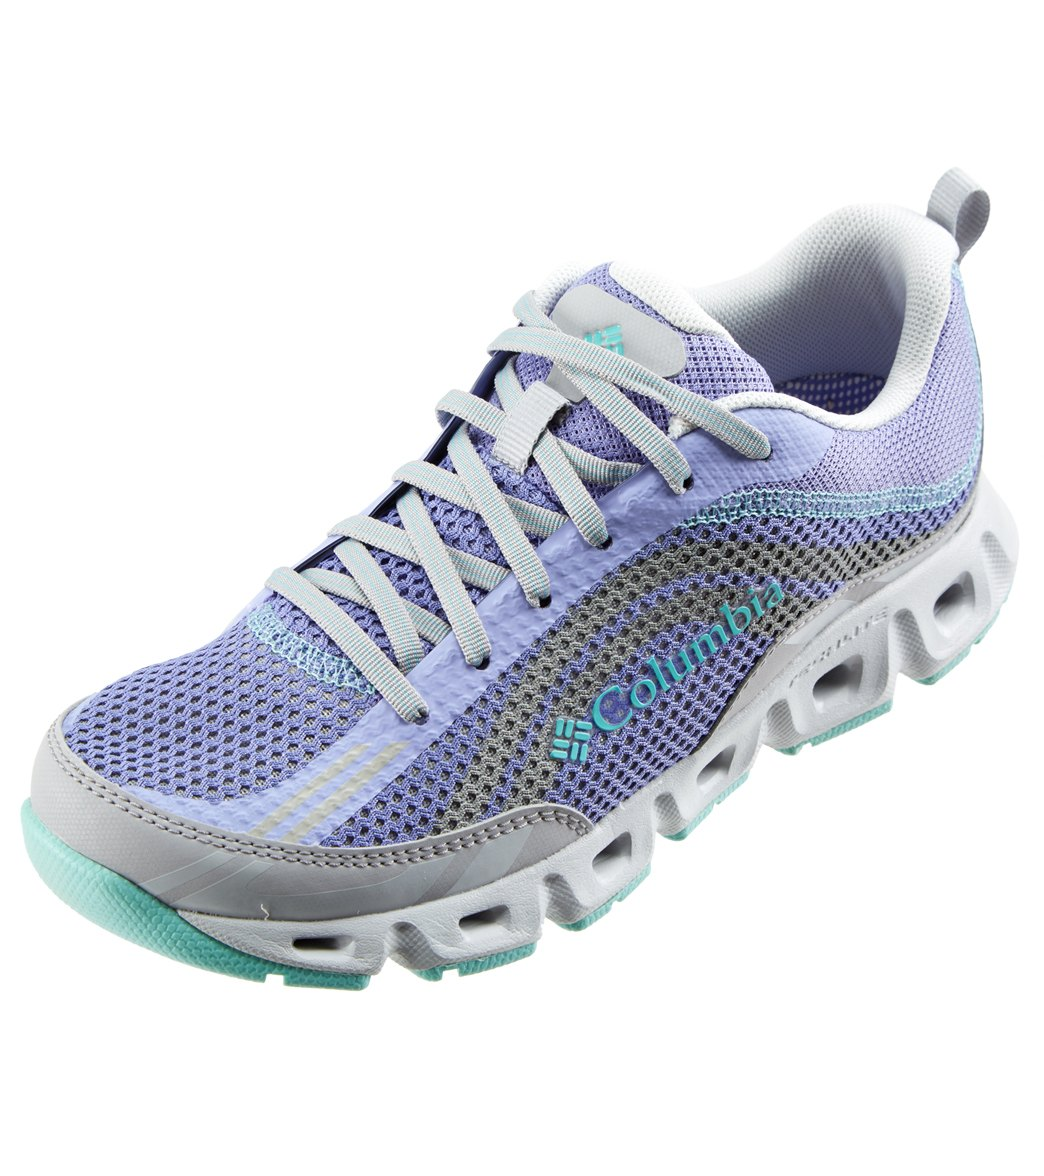 14576839cf18 Columbia Women s Drainmaker IV Hybrid Shoe at SwimOutlet.com - Free Shipping